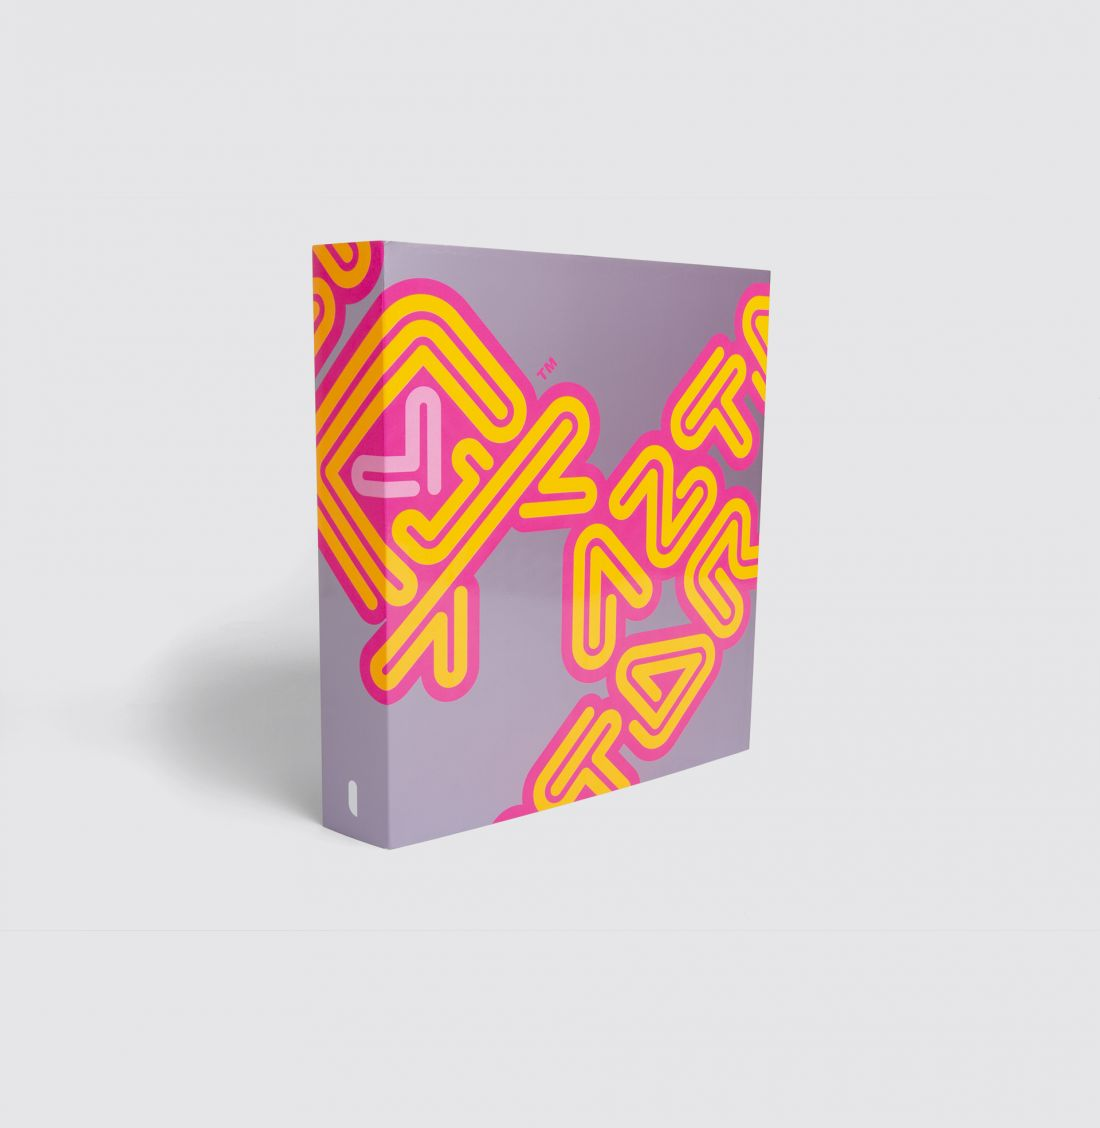 A-Z by The Designers Republic ™ of Unit Editions